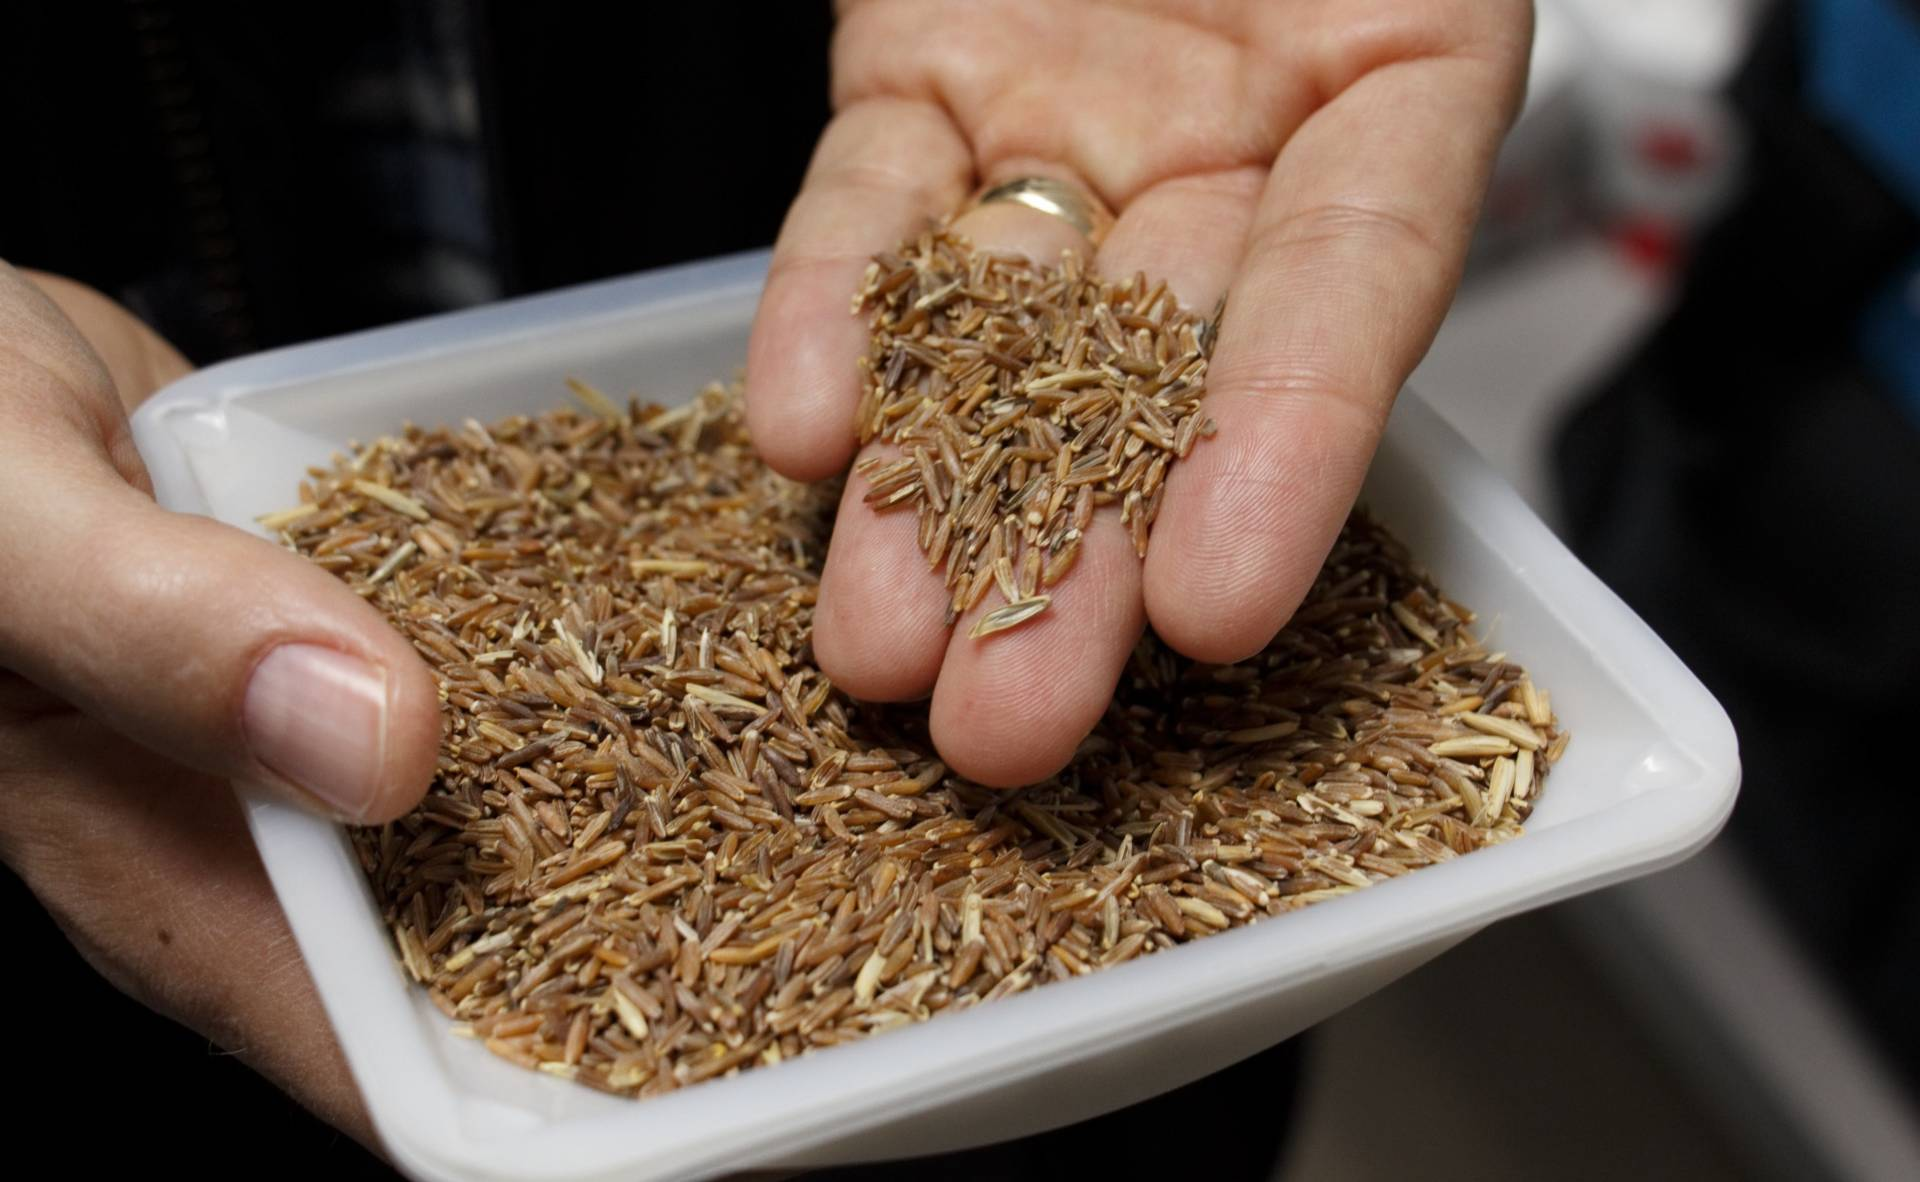 Grain from intermediate wheatgrass, or Kernza. The Land Institute is recruiting farmers to grow larger quantities of the grain for General Mills.